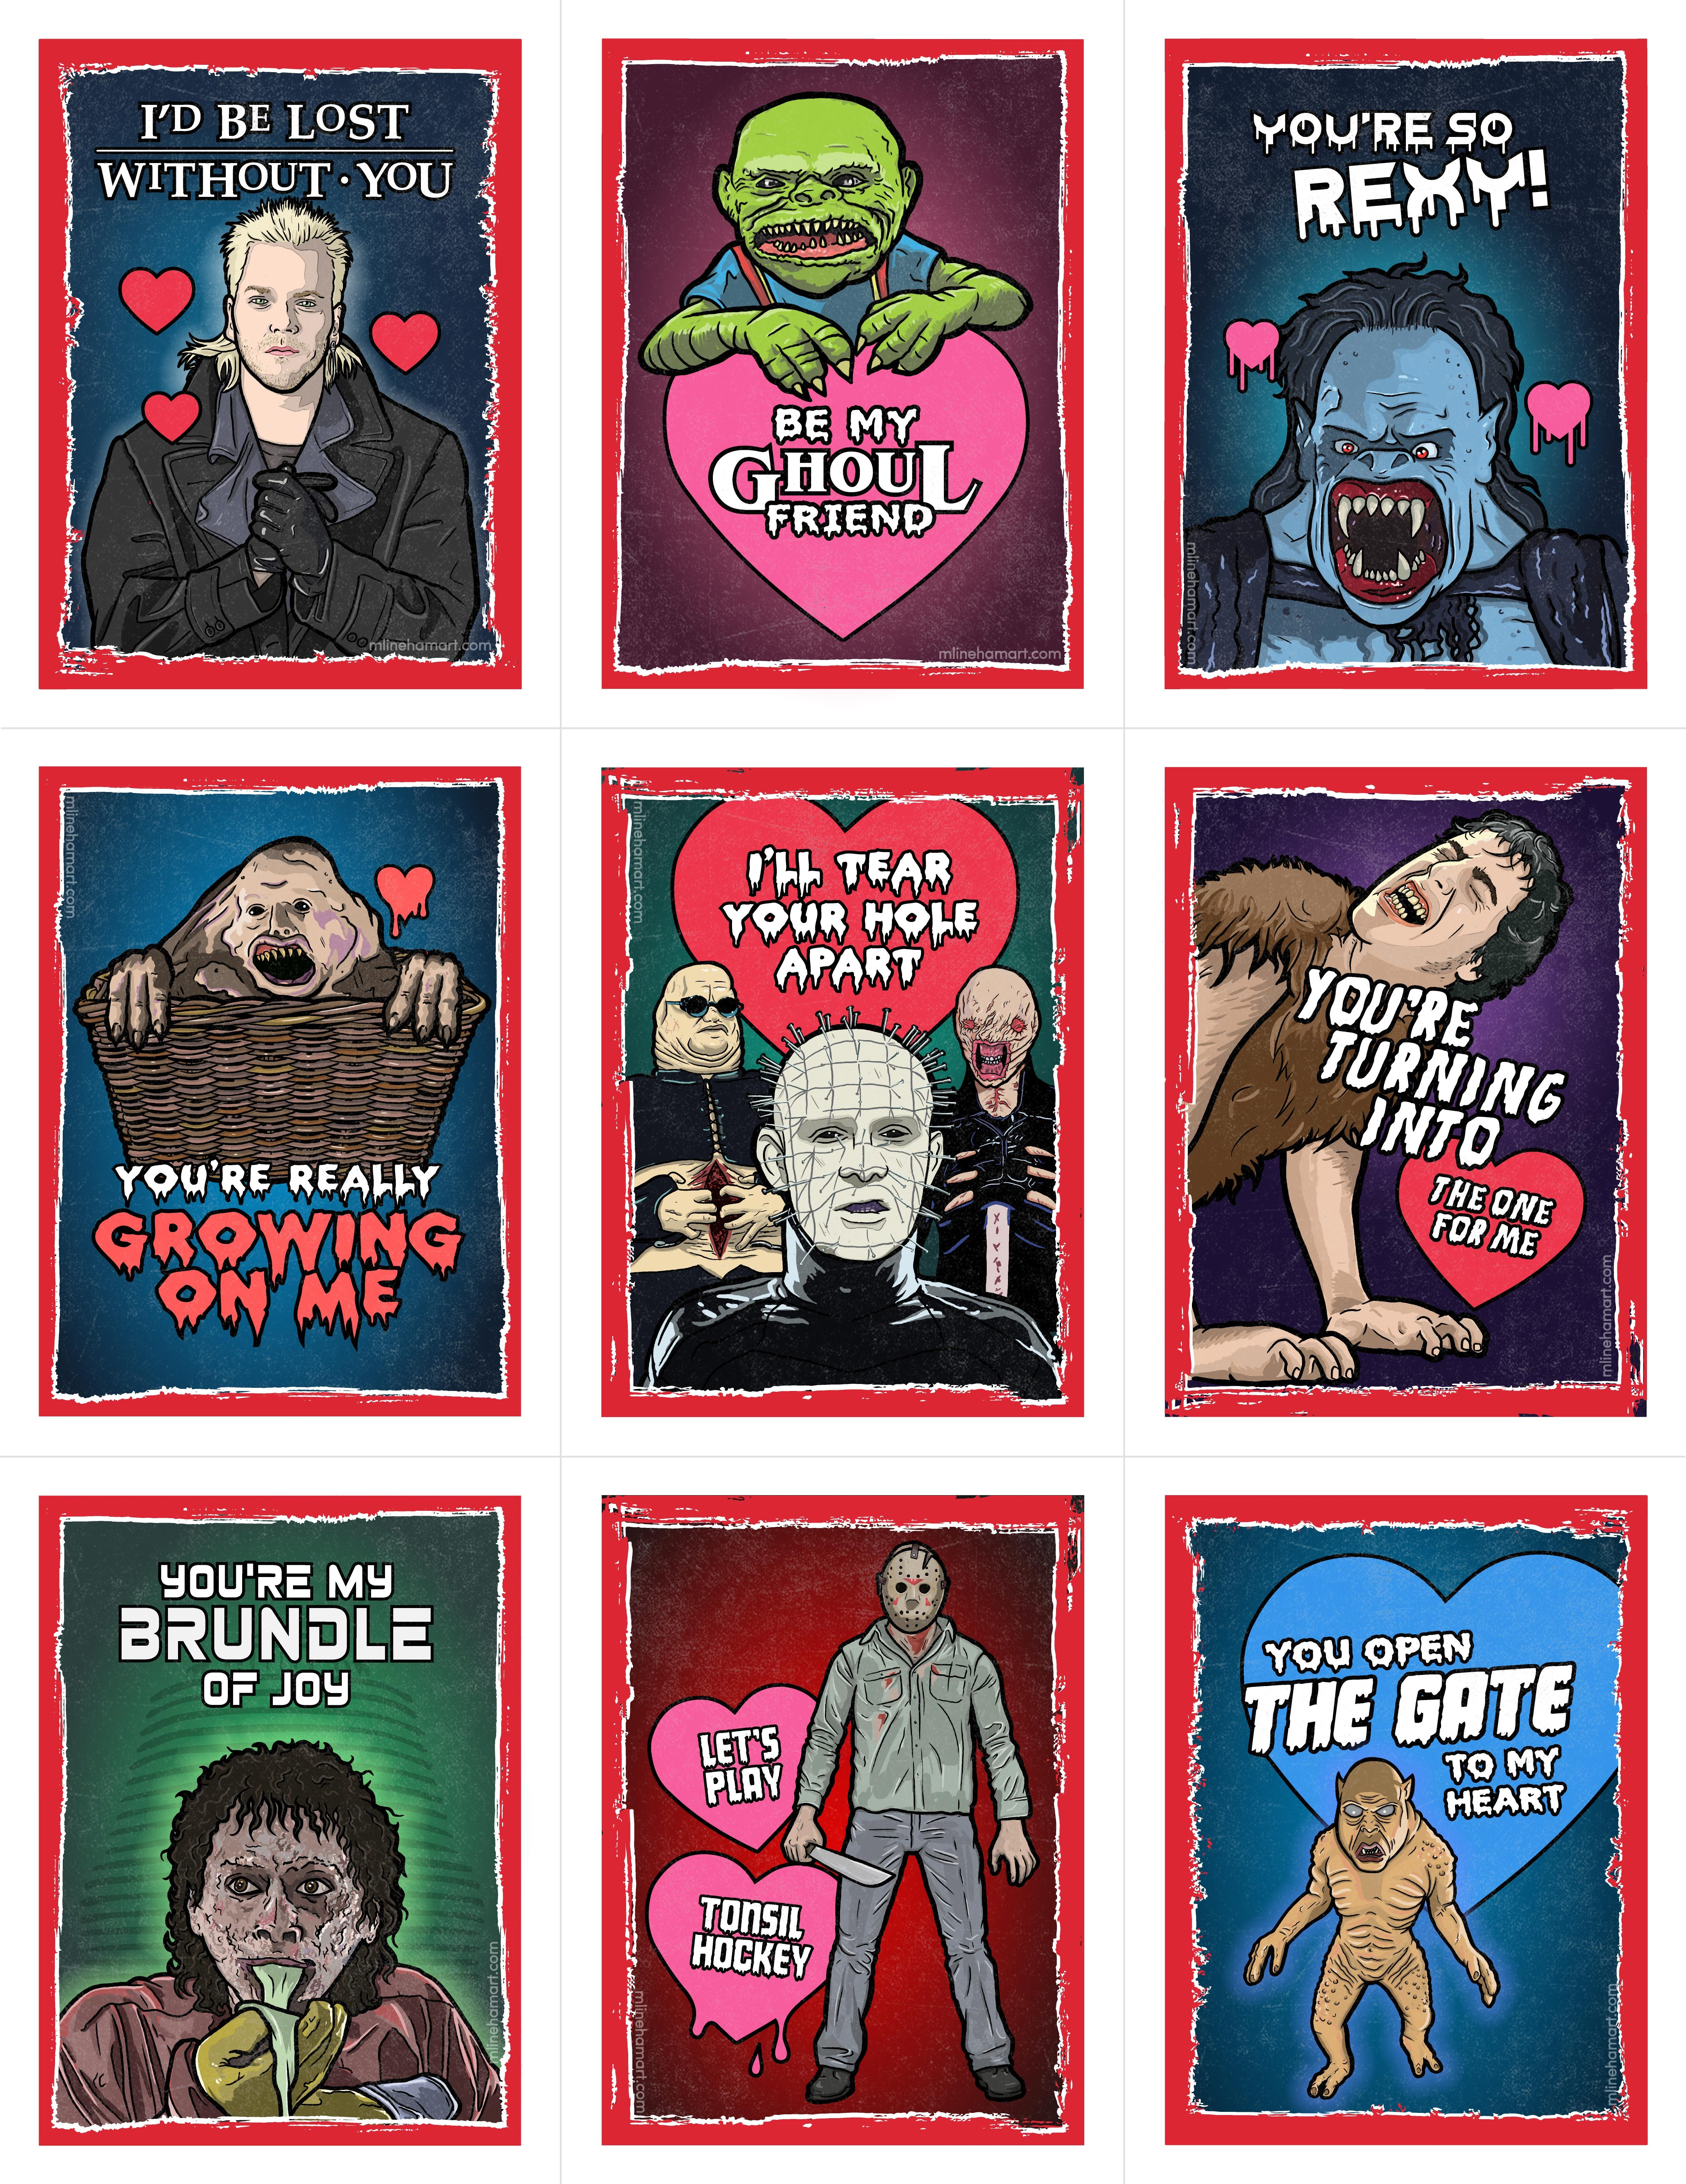 The 2017 80\u0027s Horror Valentine\u0027s Day Card Pack is perfect for sharing with  your loved ones, friends and coworkers on Valentine\u0027s Day!